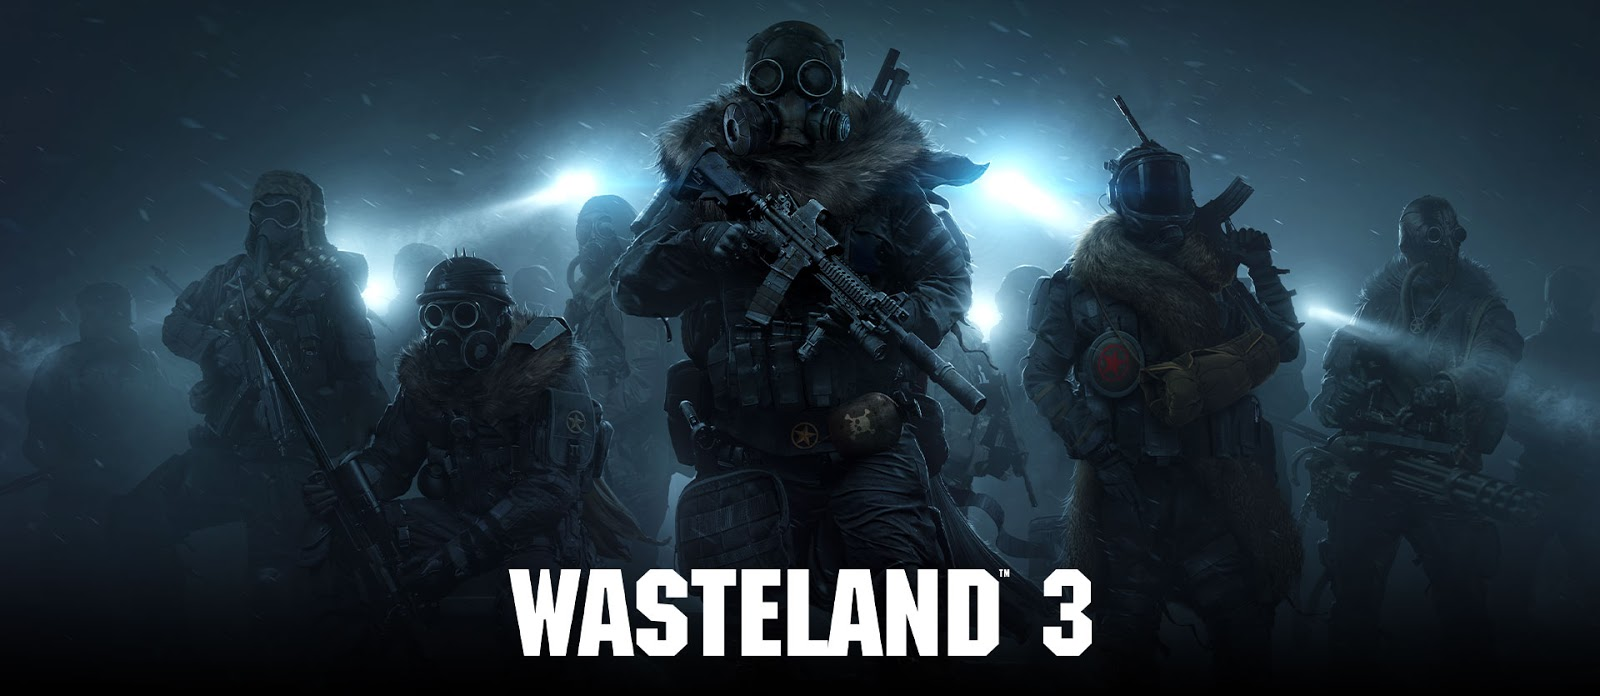 Wasteland 3 for Xbox One and Windows 10